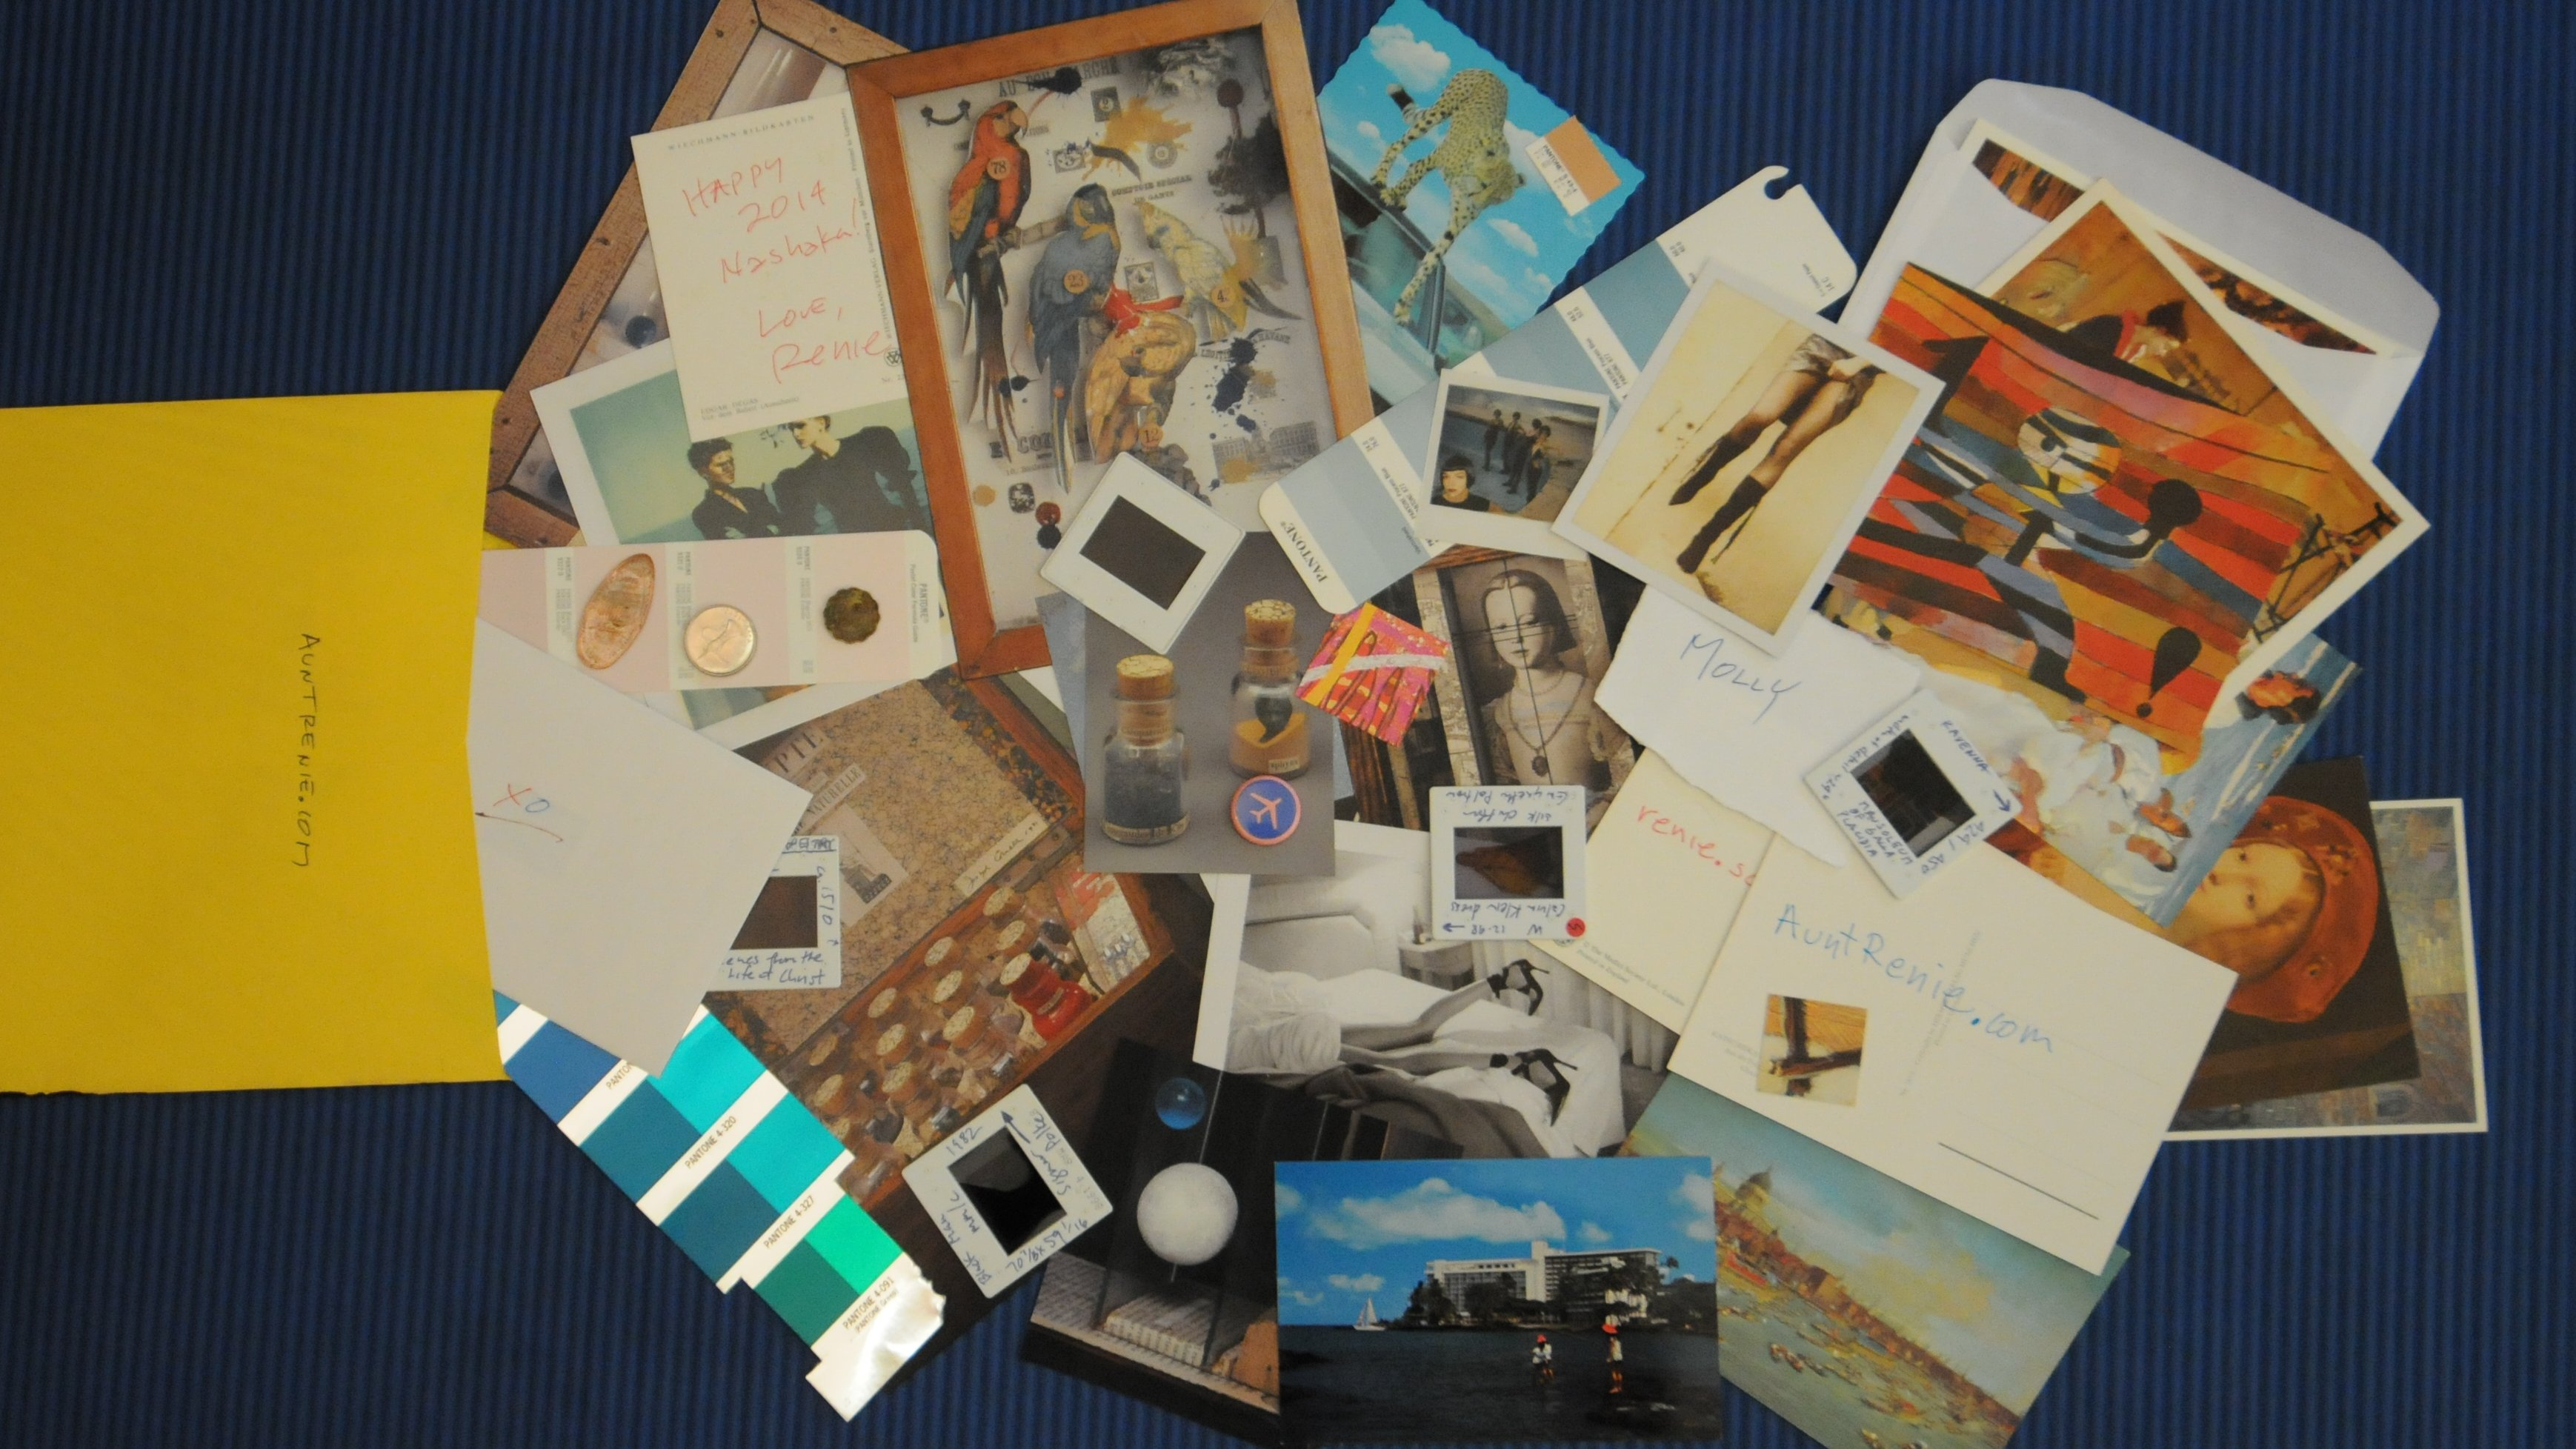 """an """"Art Care Package"""" - a large envelope filled with many bits of ephemera: photographs, slides, paint chips, audio CD's, foreign coins, and other materials"""